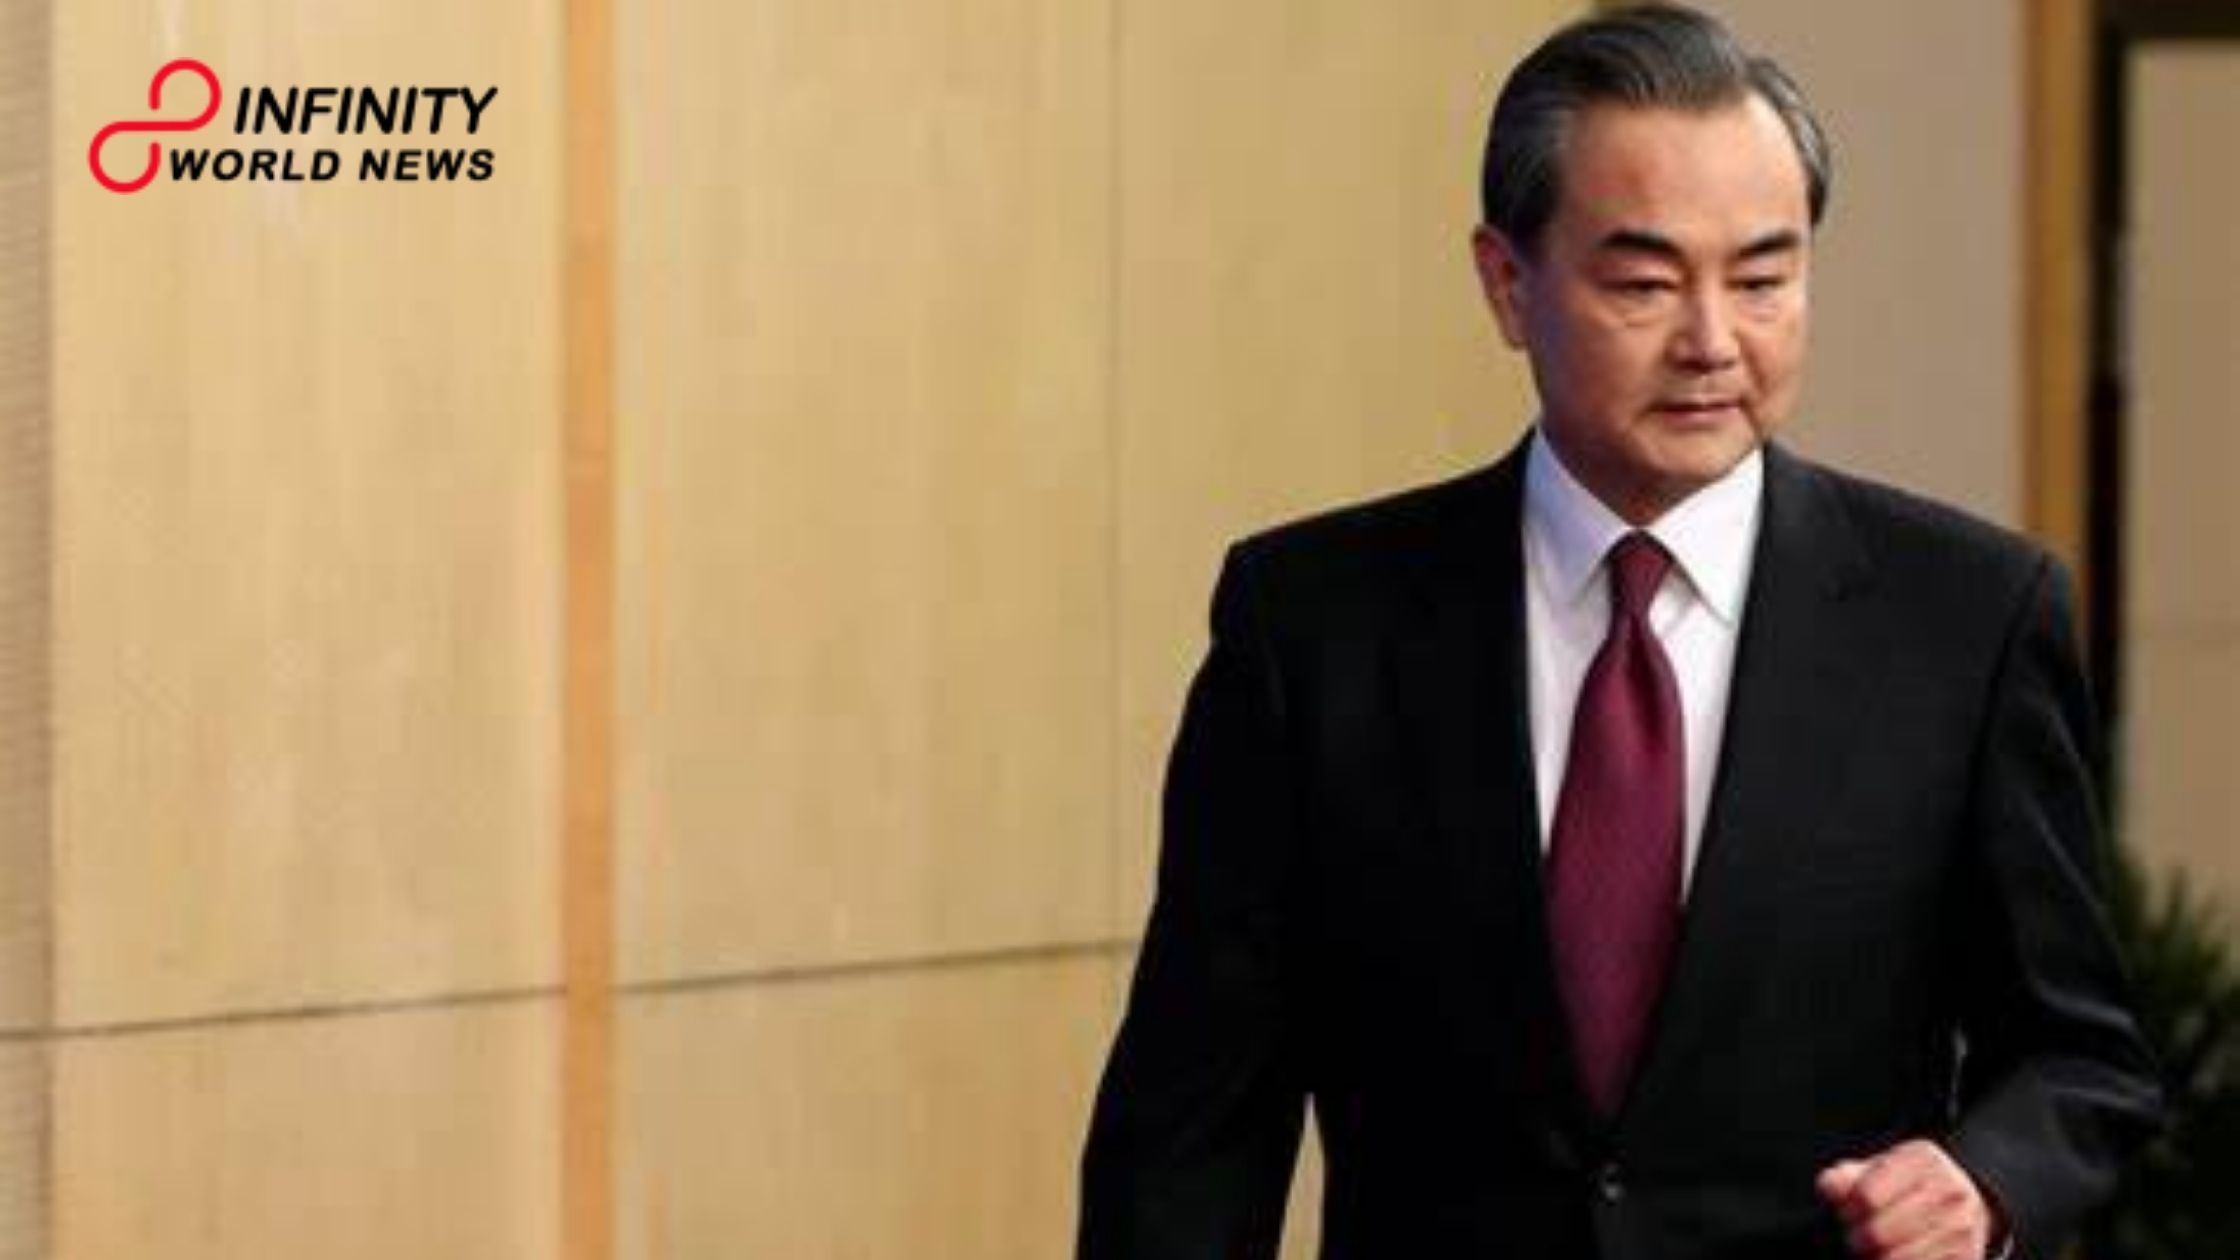 China's Top Diplomat Required To Allow Xinjiang Atrocities; Gives Extreme 'training' Spin